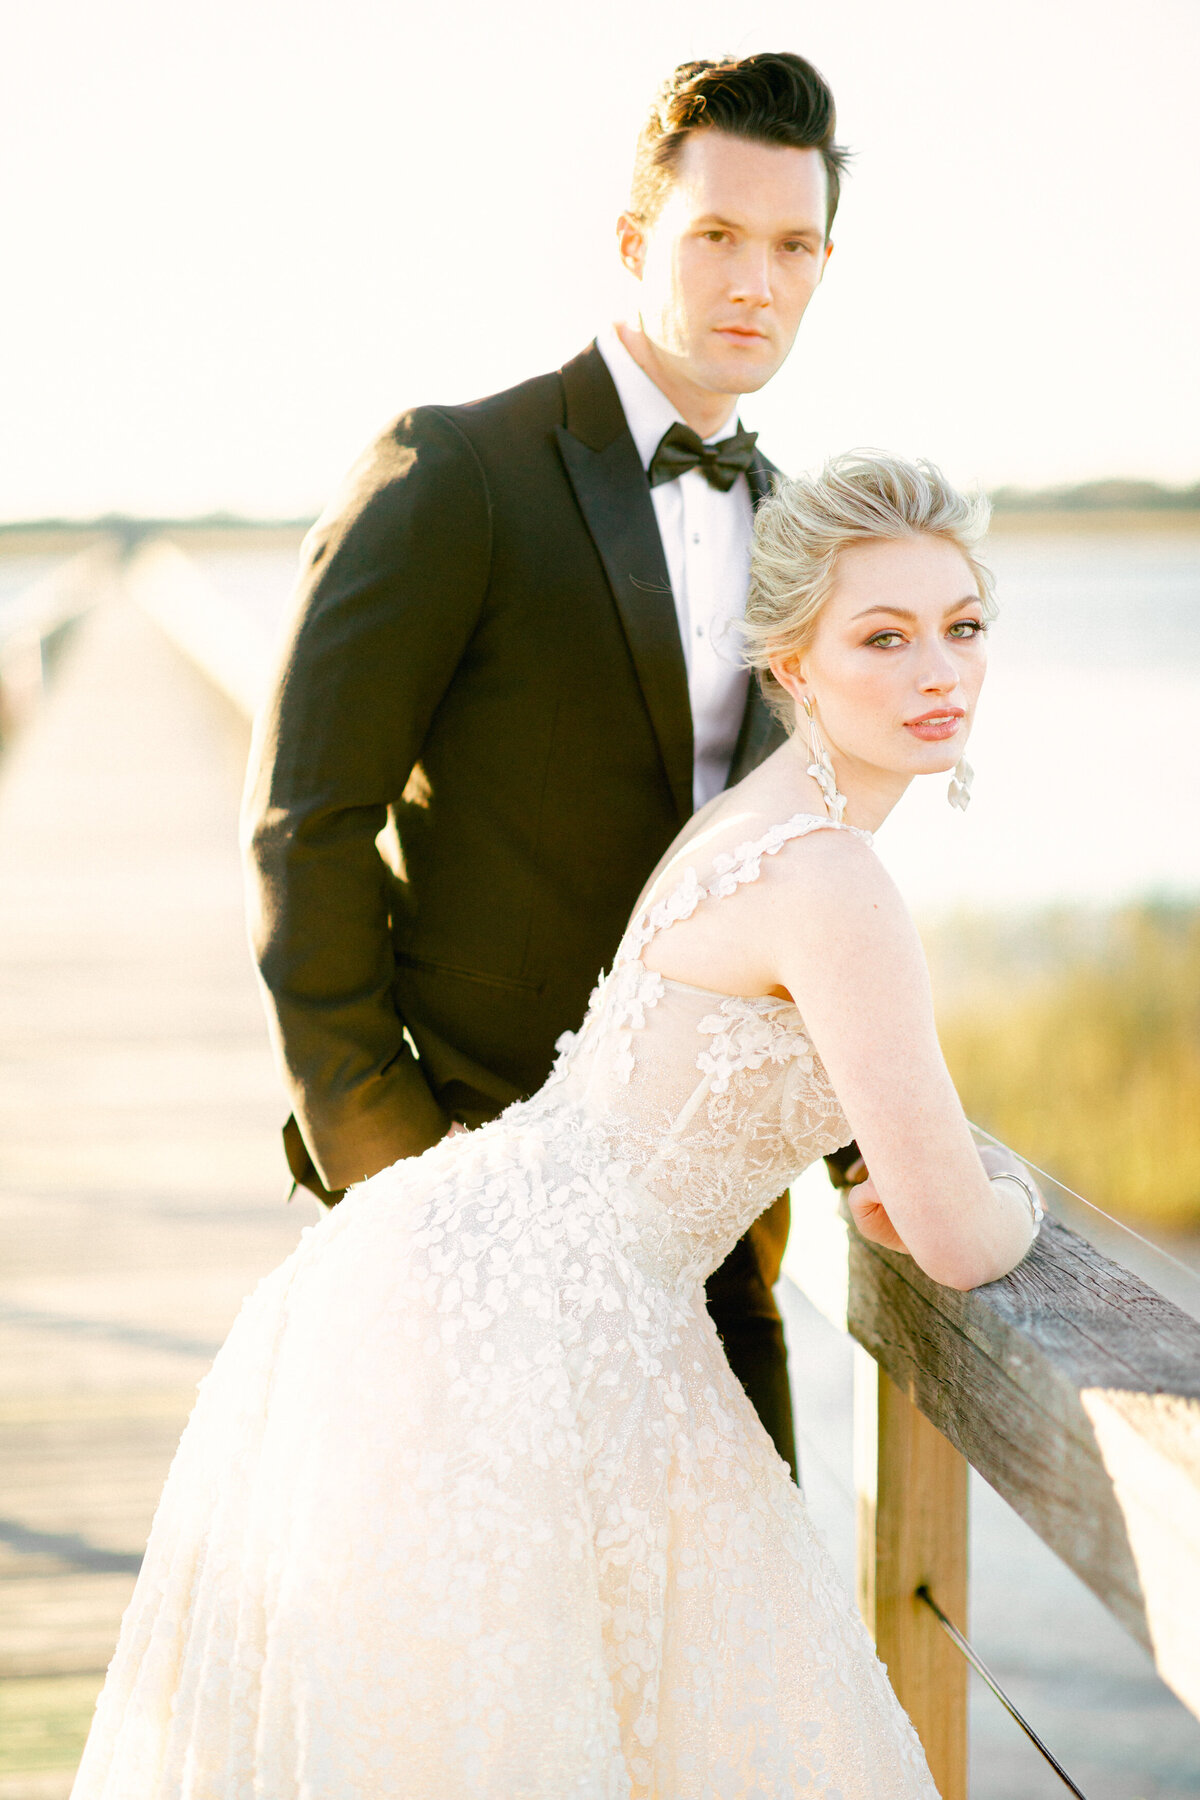 Bride and groom standing on wooden dock on river at Charleston Wedding